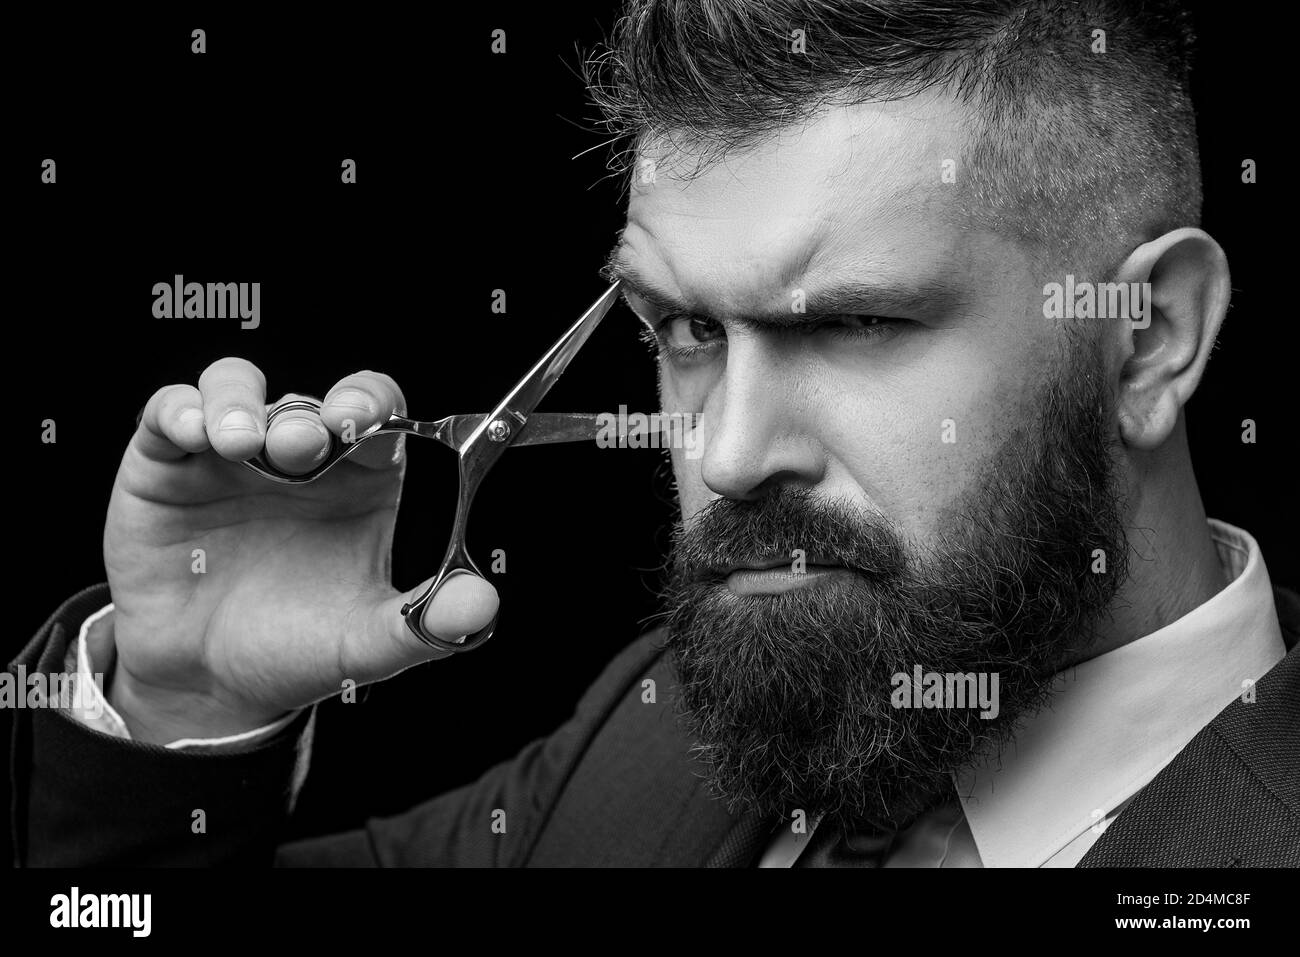 Perfect Beard Haircuts For Men Stylish And Hairstyle Hair Salon And Barber Vintage Barber Shop Barber On Black Background With Scissors Stock Photo Alamy